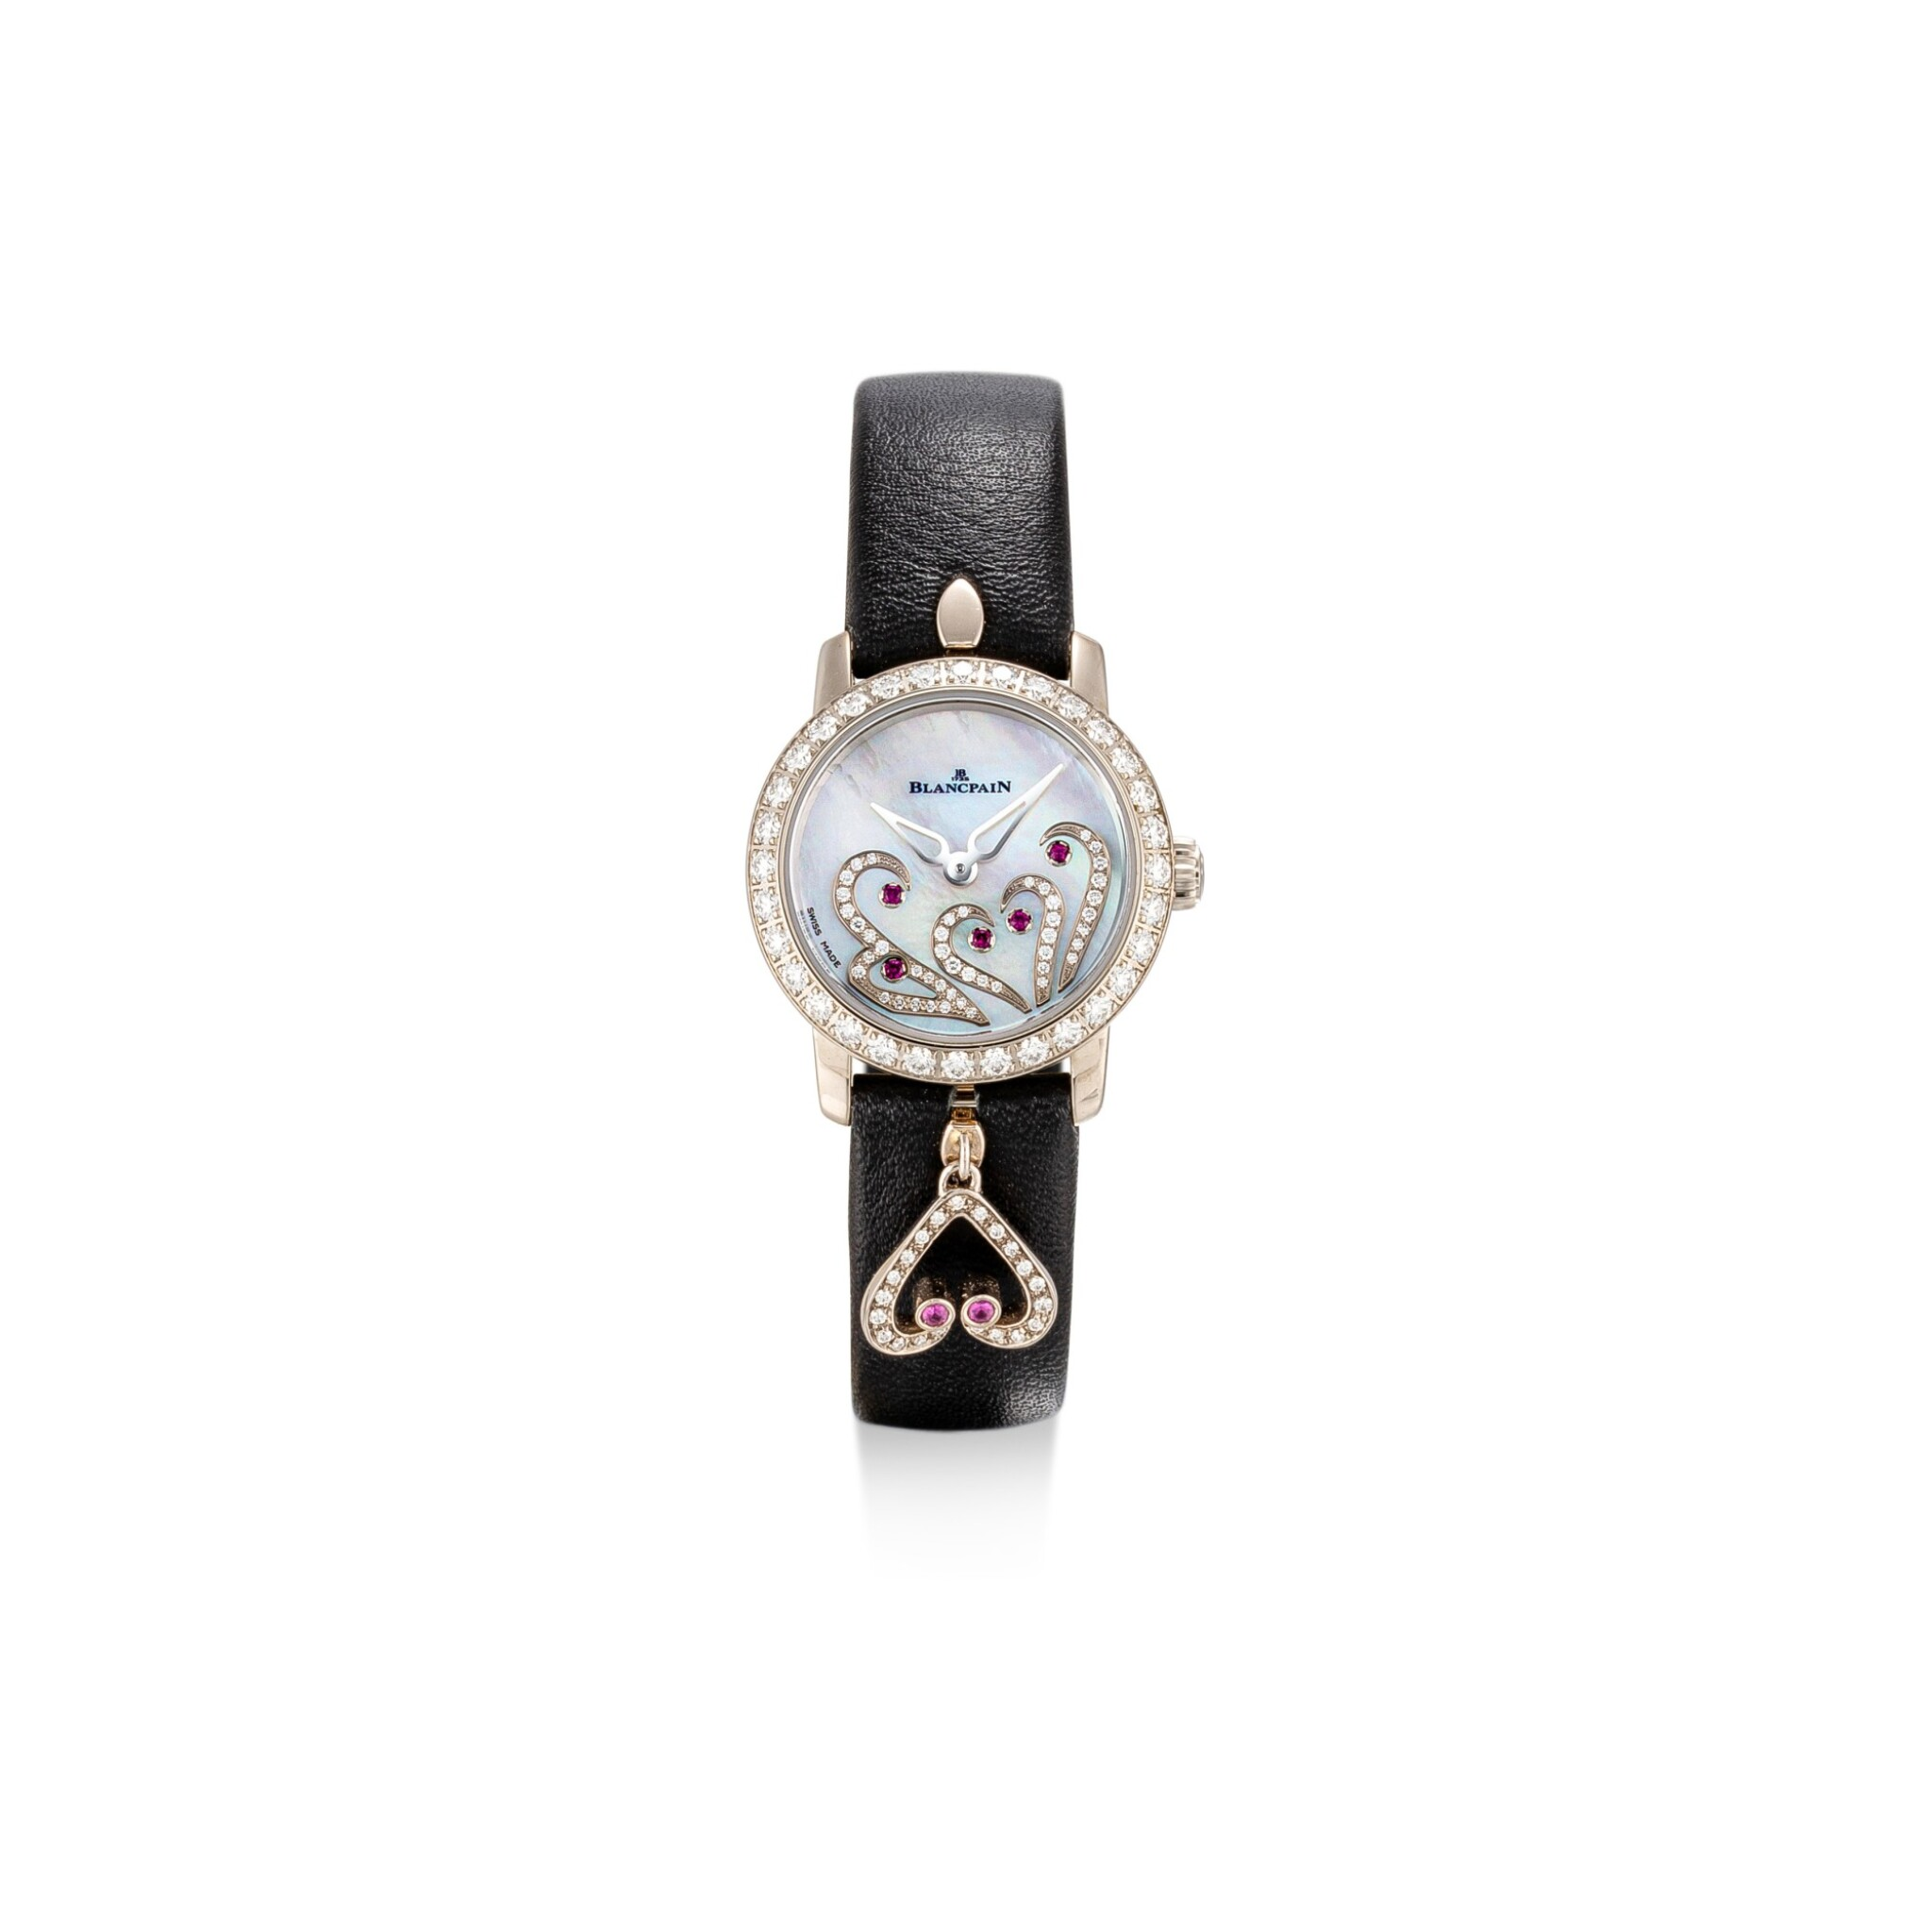 View full screen - View 1 of Lot 1102. BLANCPAIN | LADYBIRD, REFERENCE 0063B-1954-63A A WHITE GOLD, DIAMOND AND RUBY-SET WRISTWATCH WITH MOTHER-OF-PEARL DIAL, CIRCA 2017.